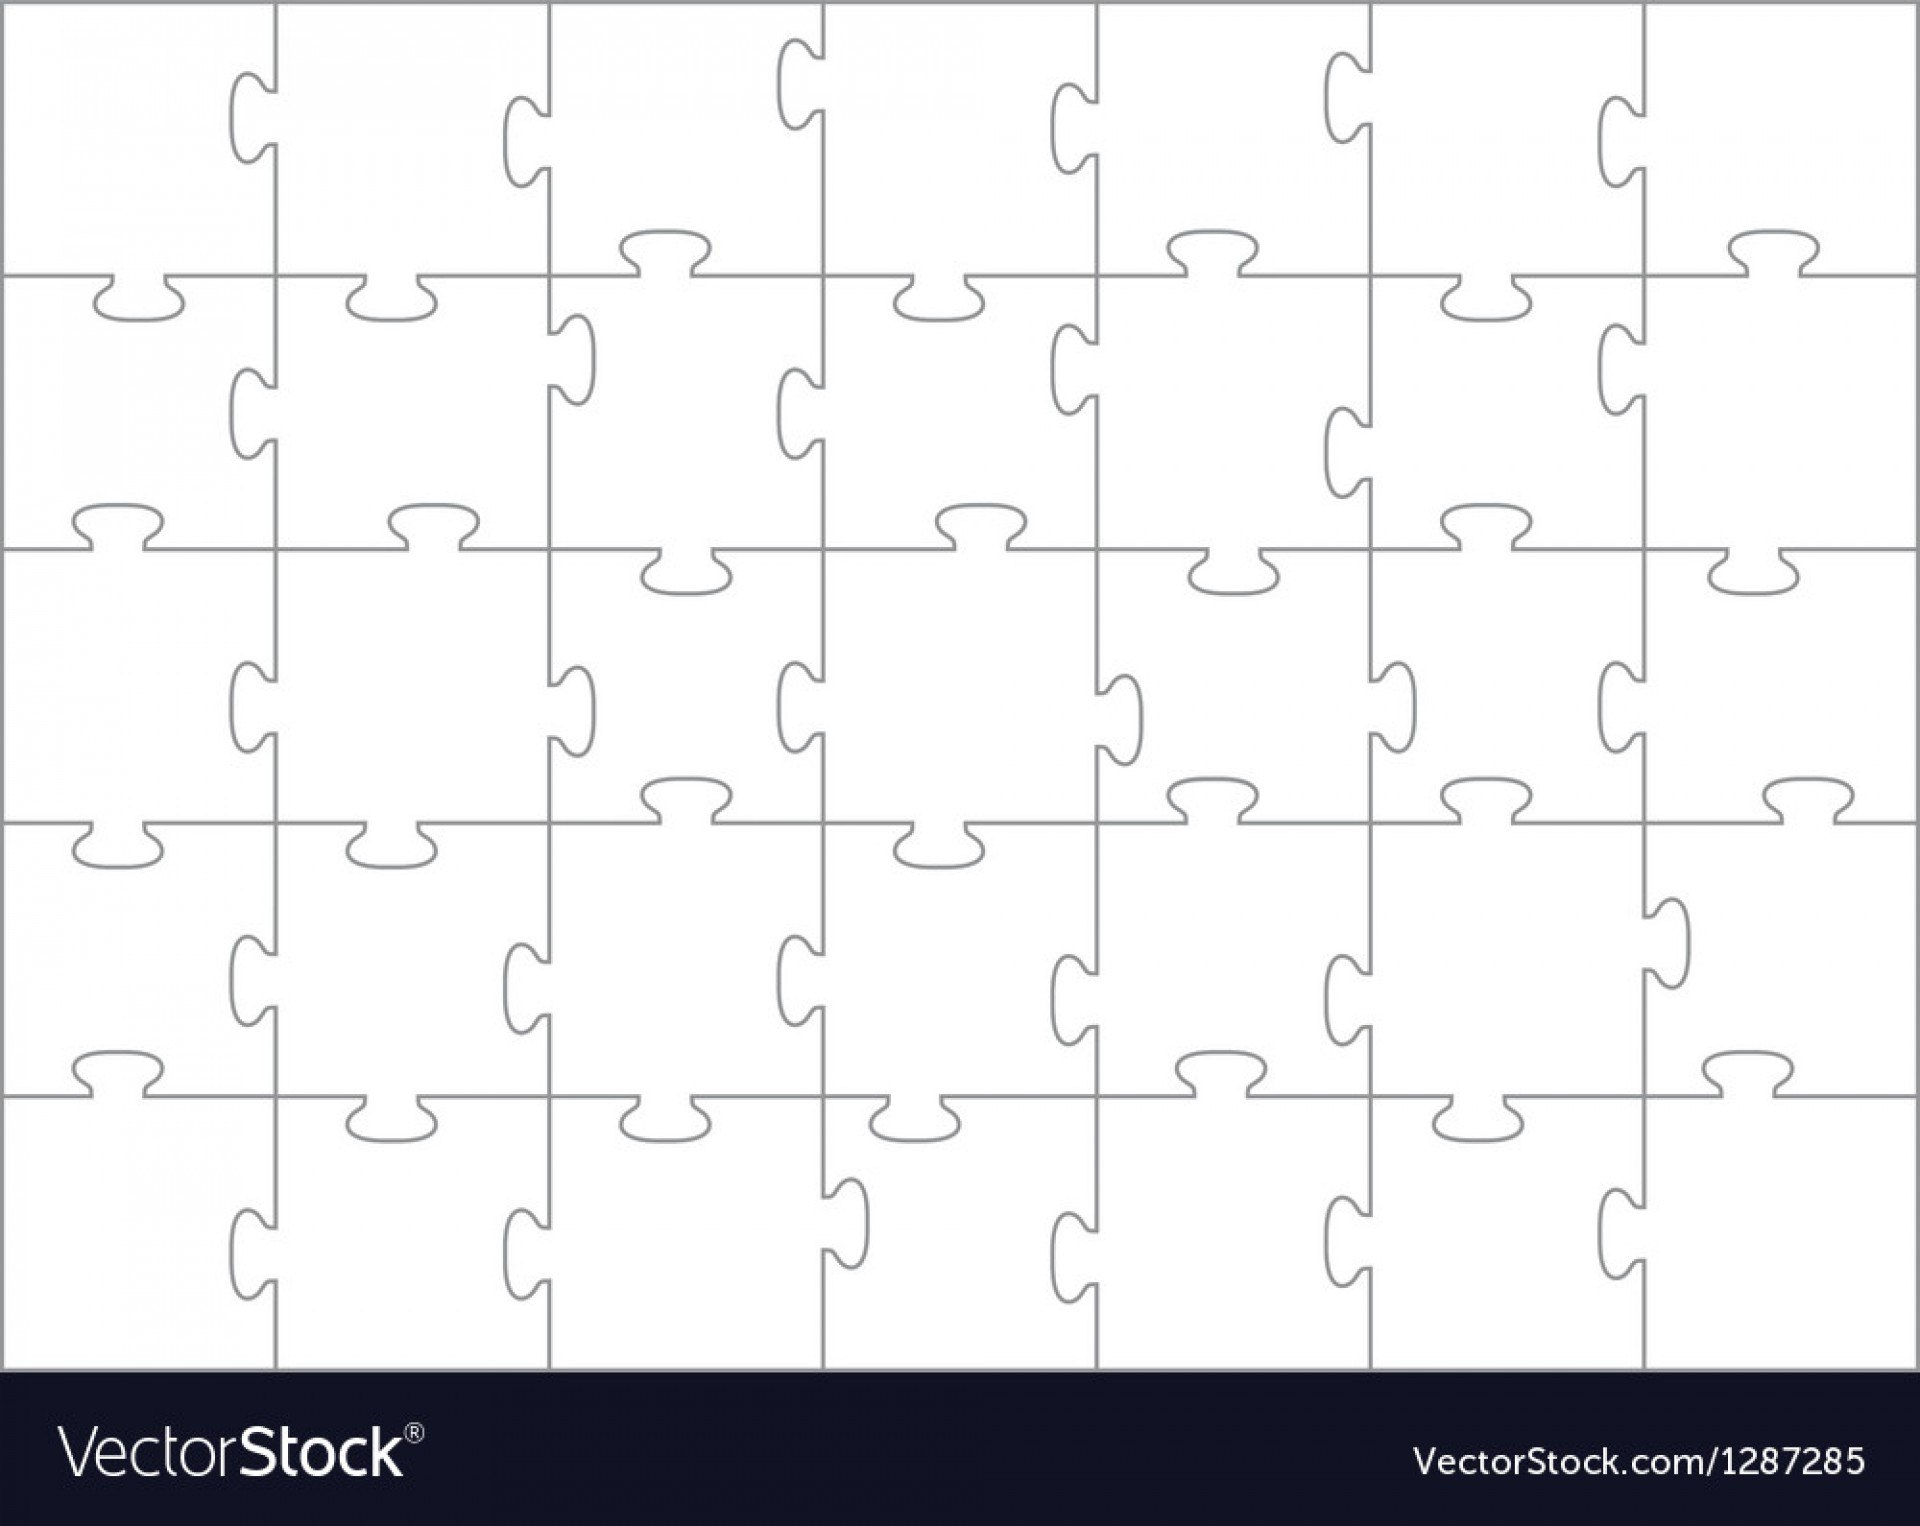 Puzzle Piece Template Ideas Jig Best Saw Jigsaw Free Word Pertaining To Jigsaw Puzzle Template For Word